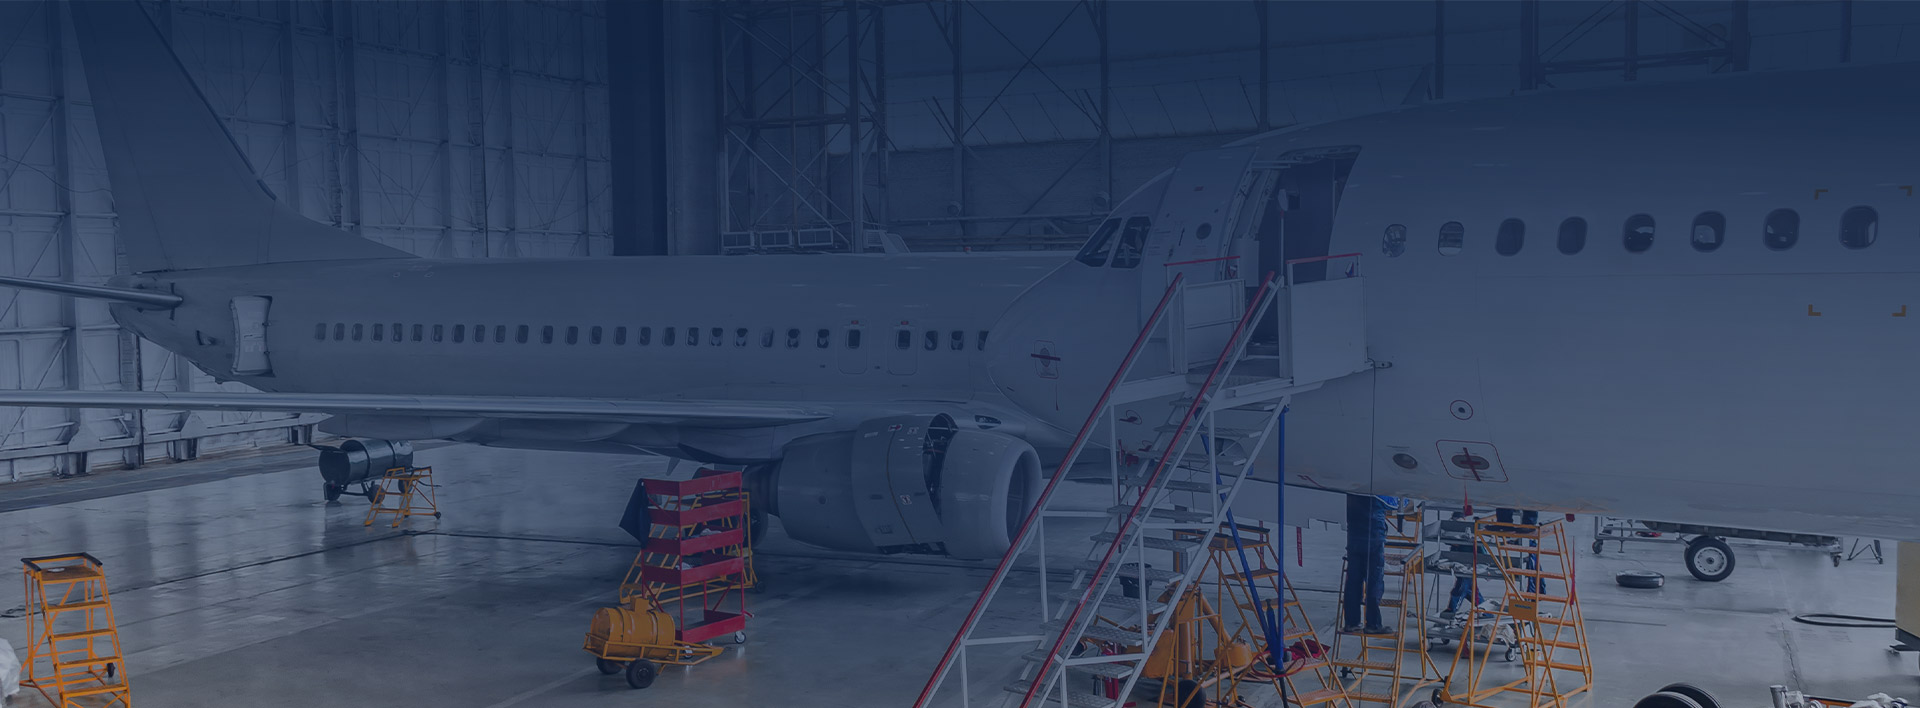 Aerospace & Defense Industry header